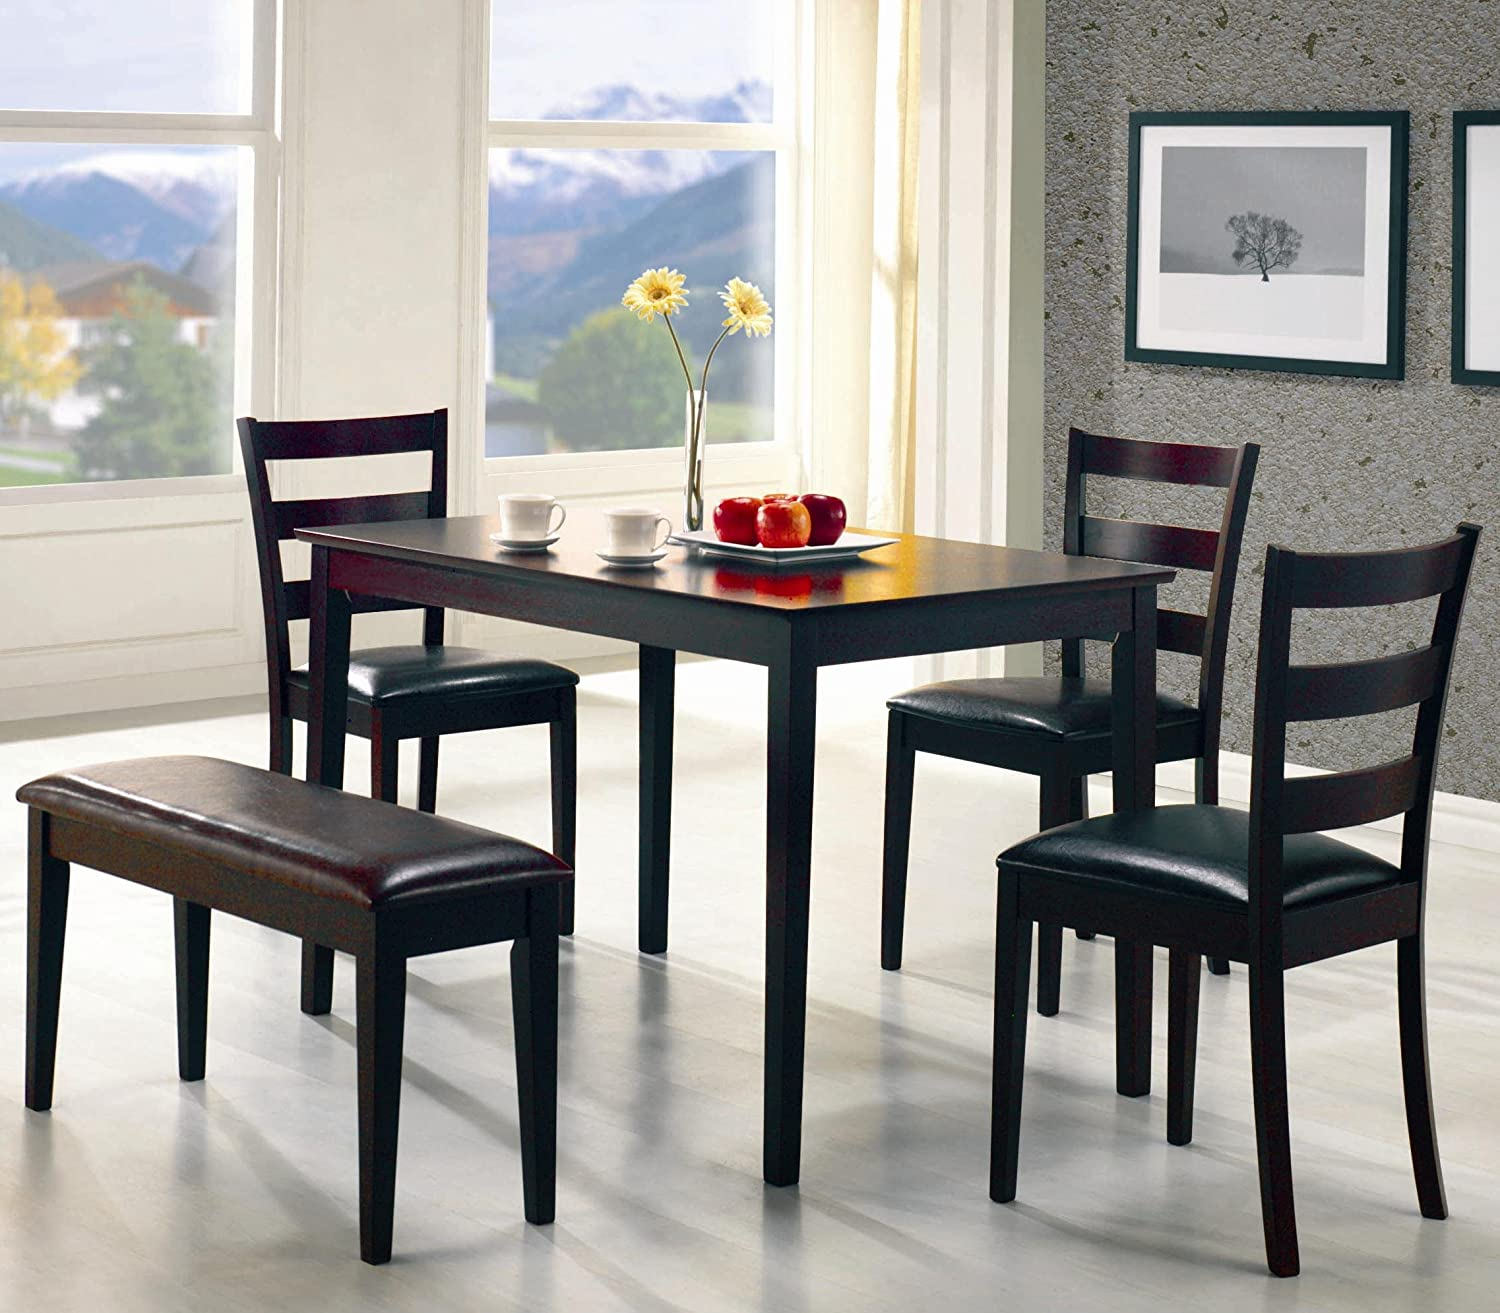 Amazon com coaster 5pc dining table chairs bench set cappuccino finish kitchen dining